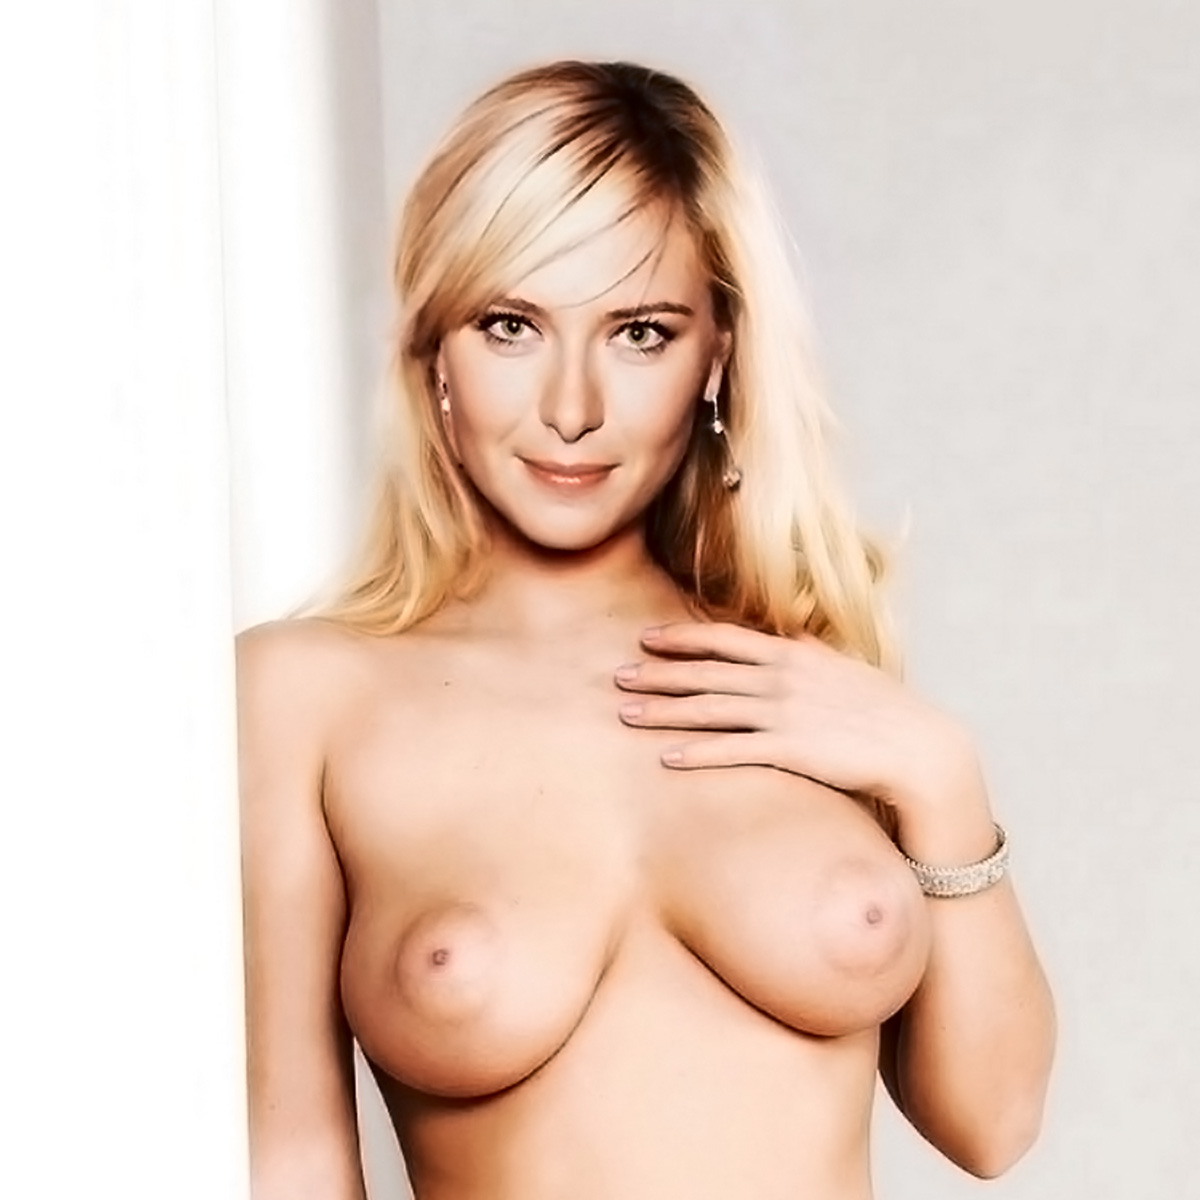 Maria+Sharapova+nude+near+bed Maria Sharapova Nude | Hottest Tennis player 2011